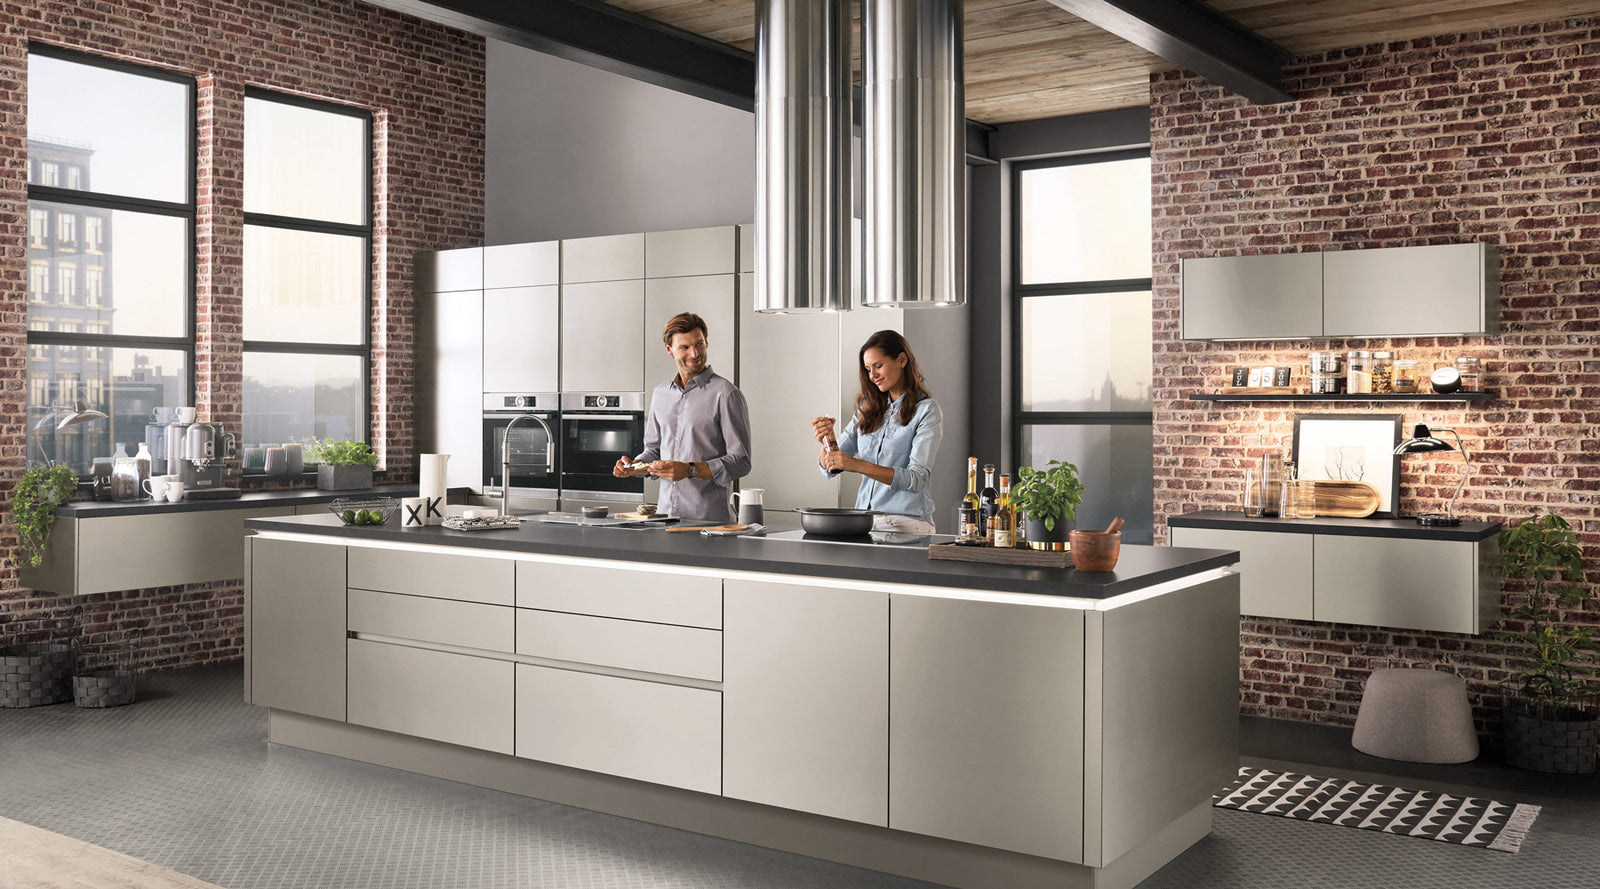 Buy and order nobilia kitchens and kitchen cabinets online